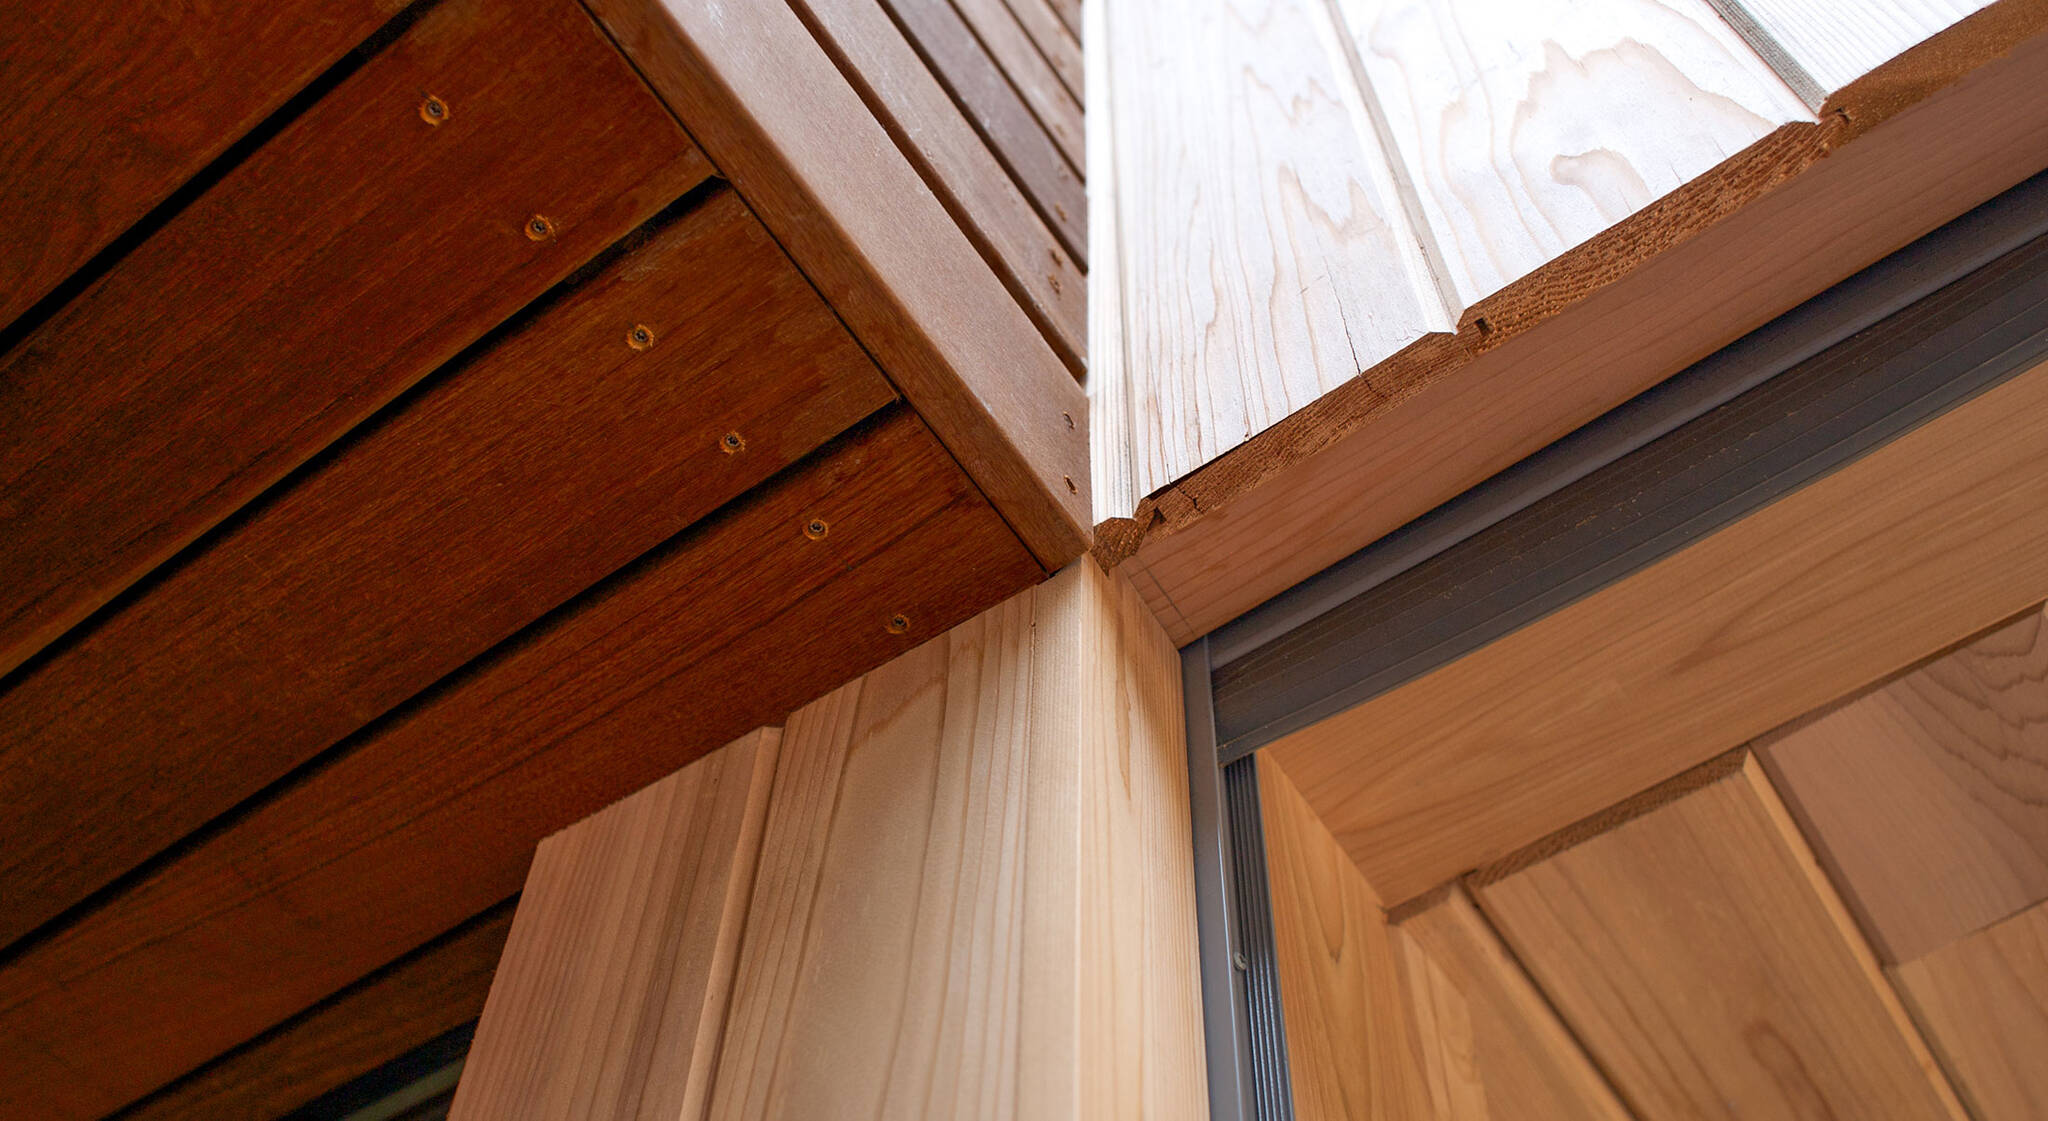 Detail of wooden ceiling and cladding edges on the sustainable lake house project in Omena, Michigan designed by the architecture studio Danny Forster & Architecture